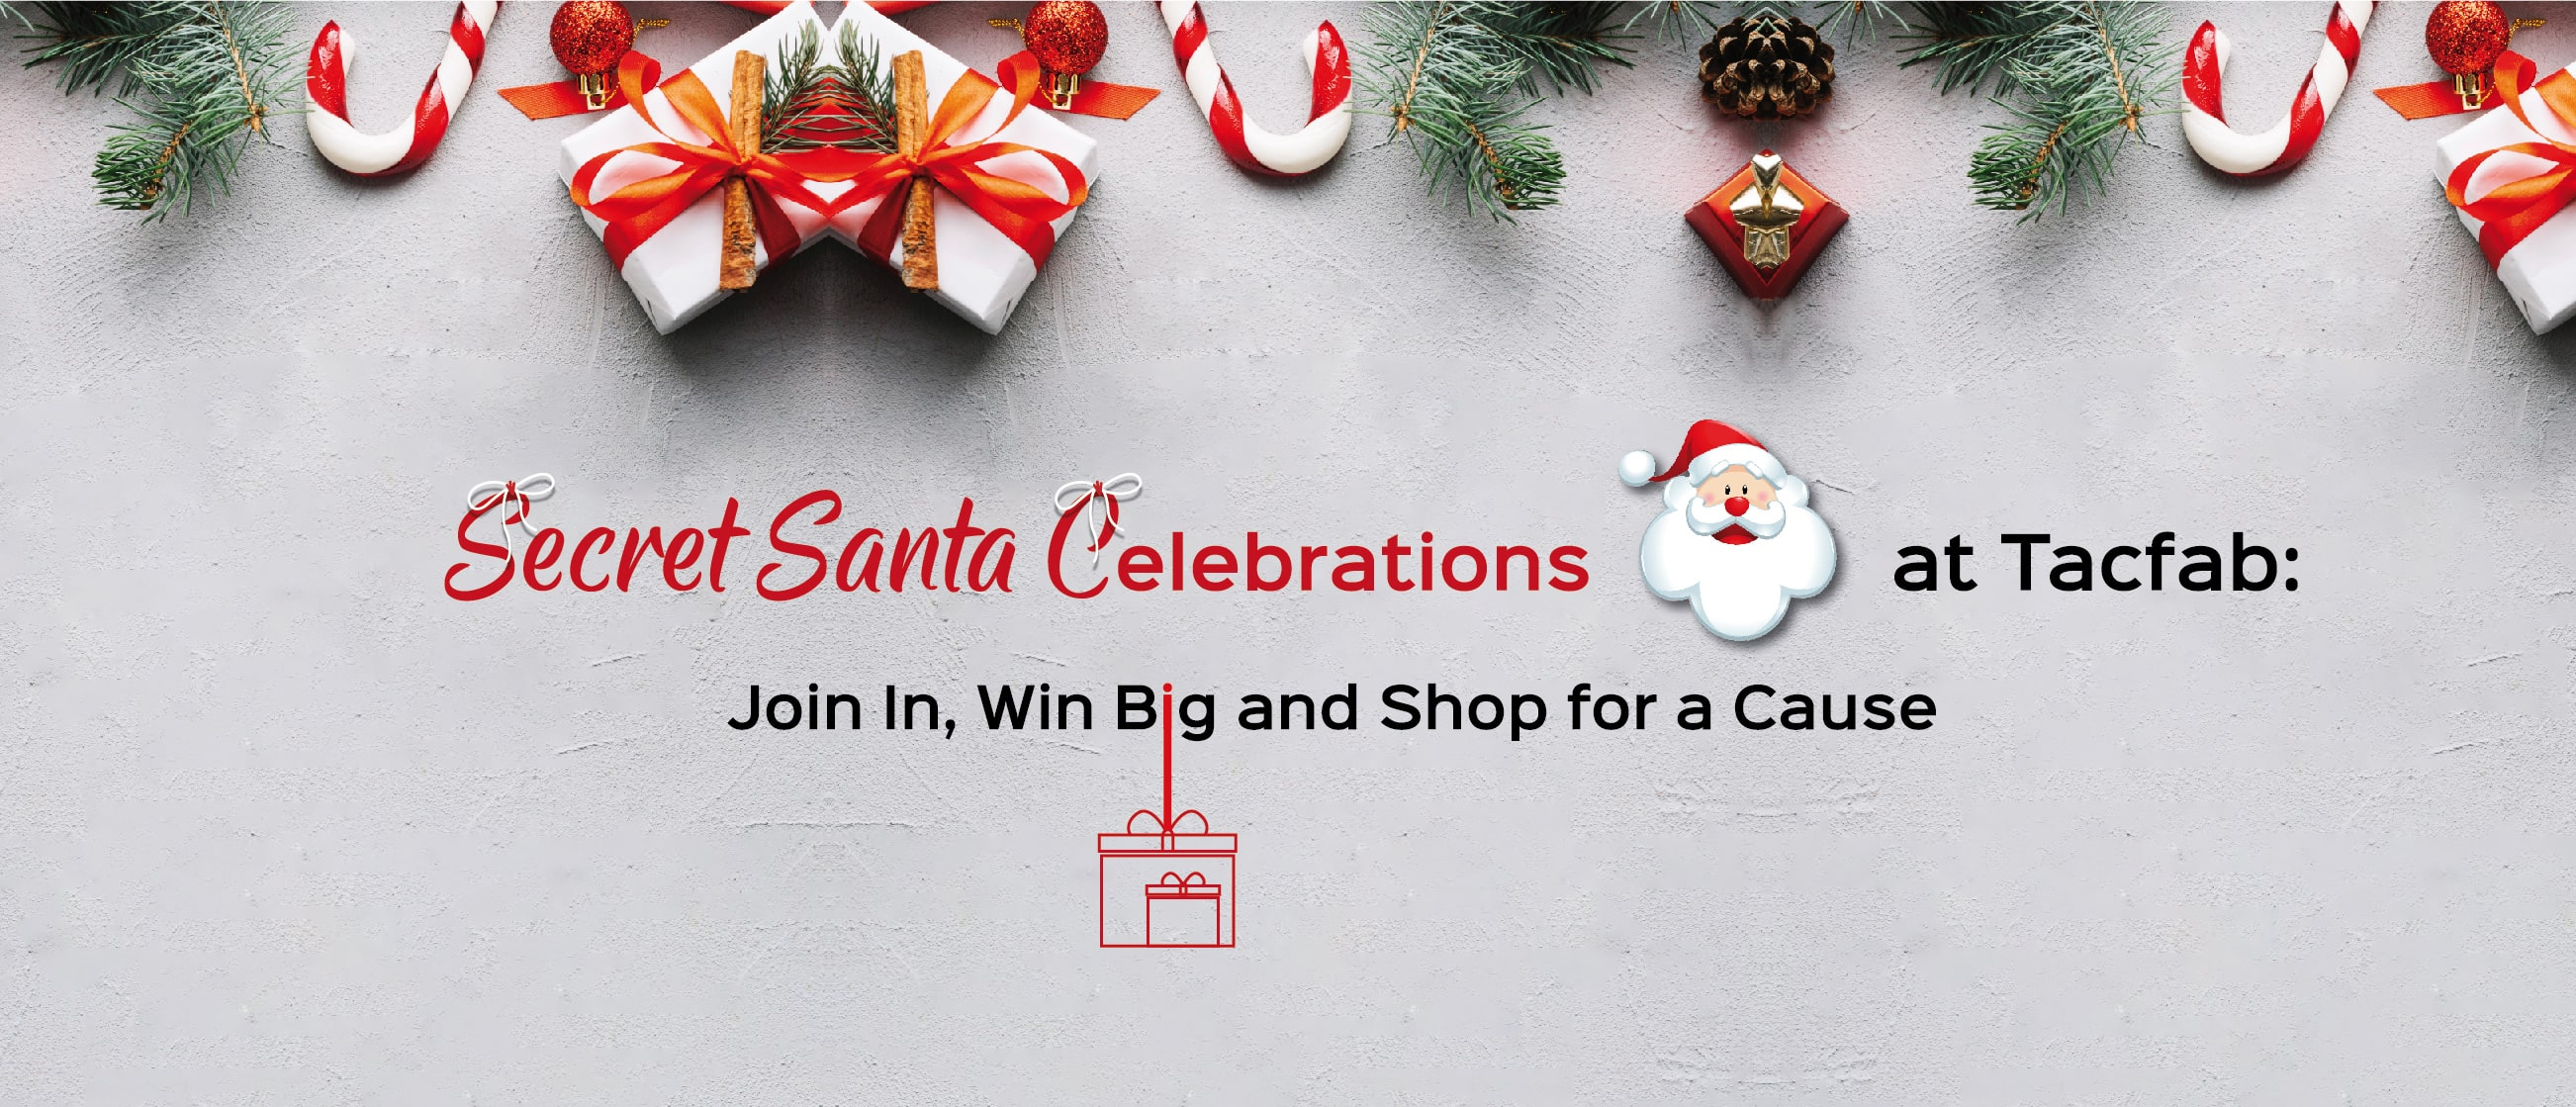 Secret Santa Celebrations at Tacfab: Join In, Win Big and Shop for a Cause